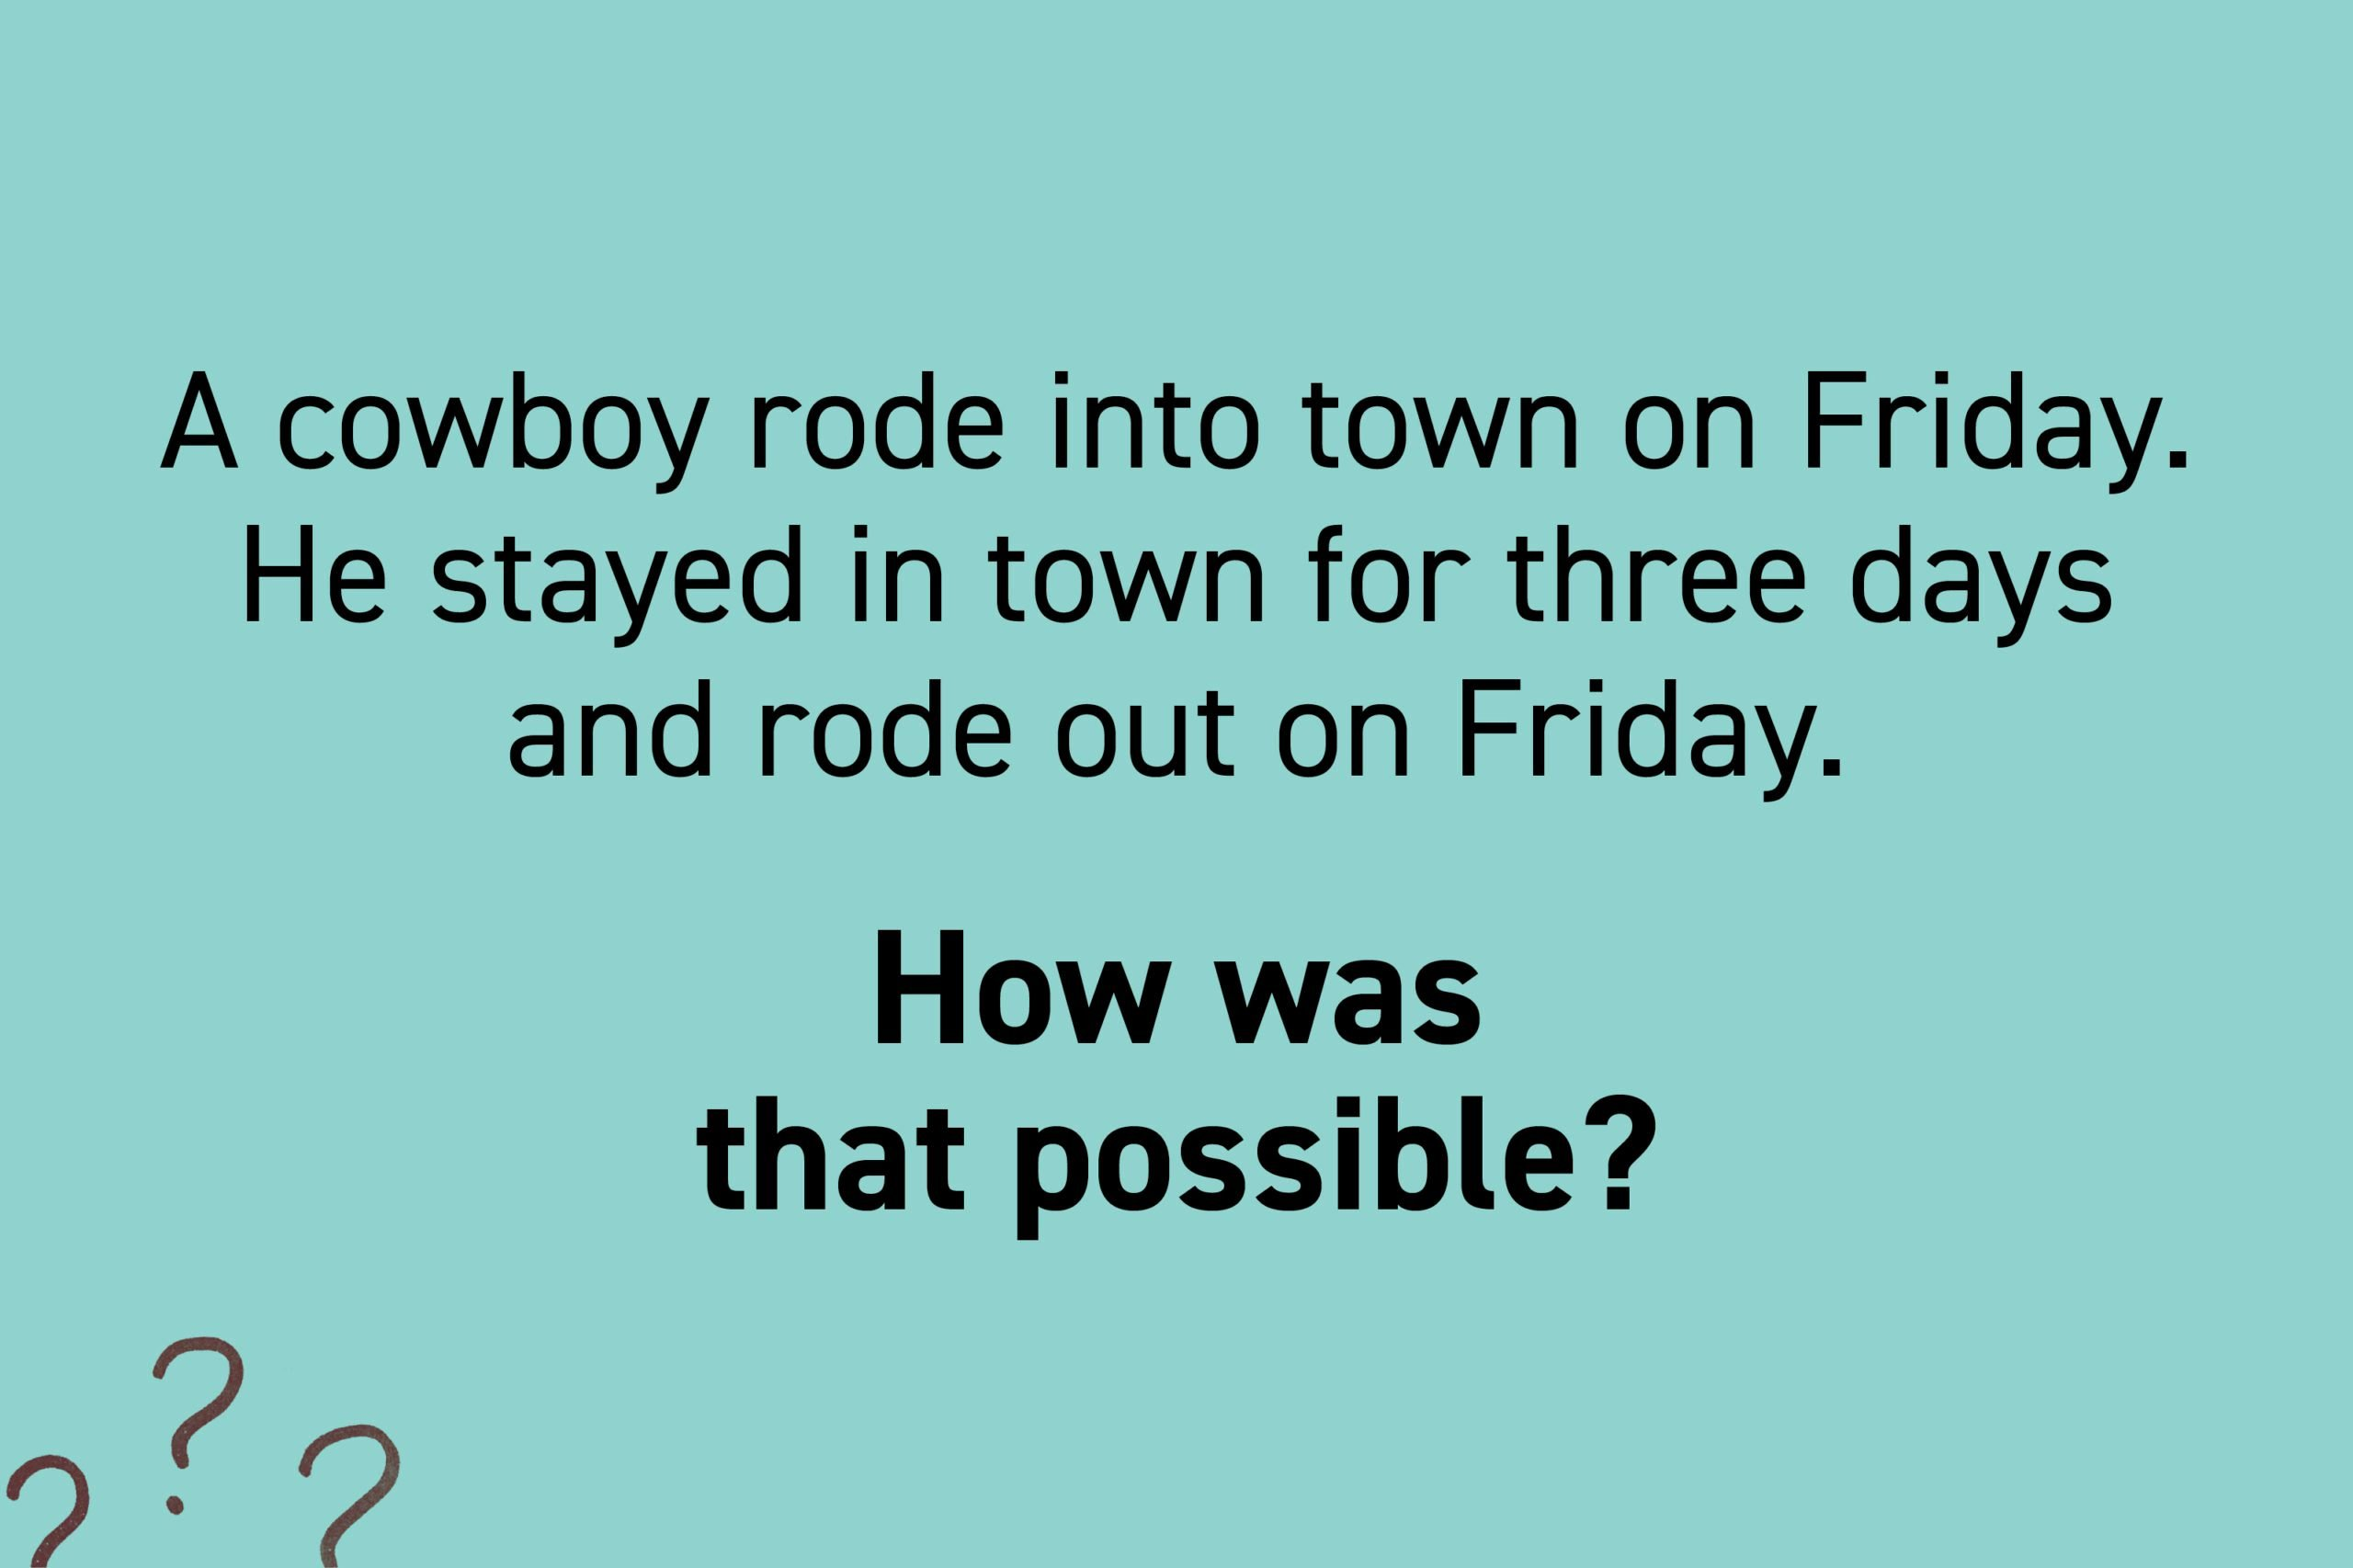 A cowboy rode into town on Friday. He stayed in town for three days and rode out on Friday. How was that possible?